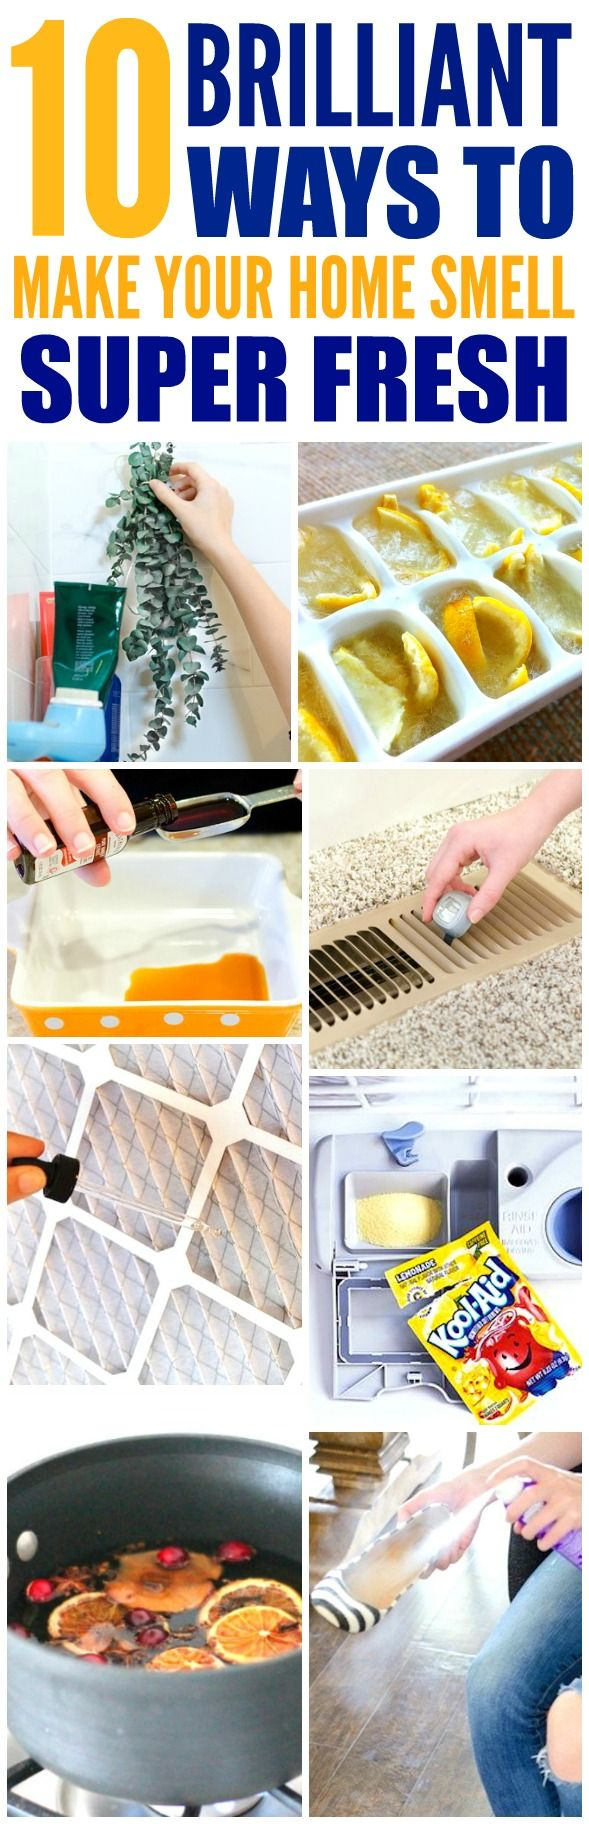 These 10 Easy Ways To Make Your Home Smell Good And Fresh Are The Best I M So Glad Found Awesome Tips Now Have A Great Way My